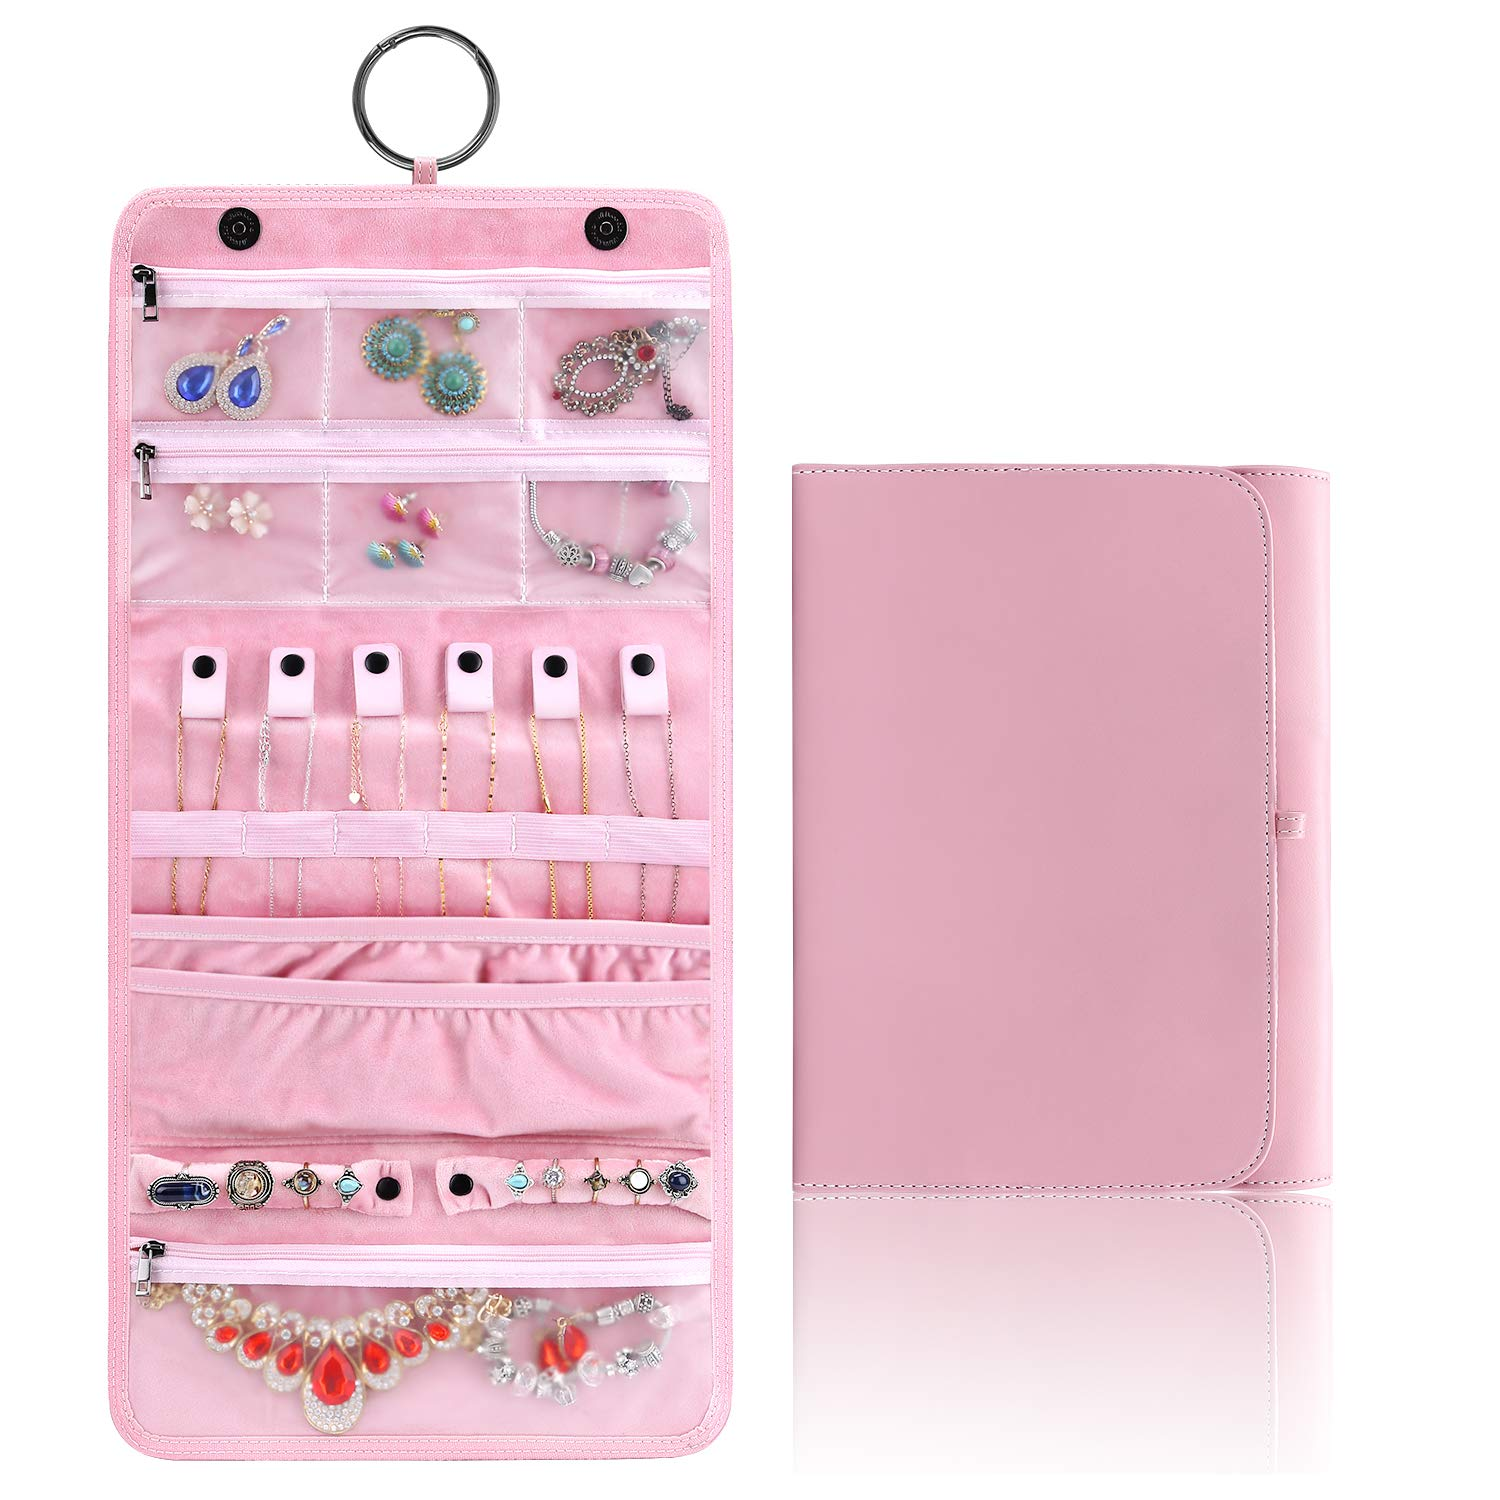 KeeQii Travel Jewelry Organizer Roll Case for Journey, Travel Hanging Jewelry Storage Cases for Bracelets, Necklace, Rings(Pink)